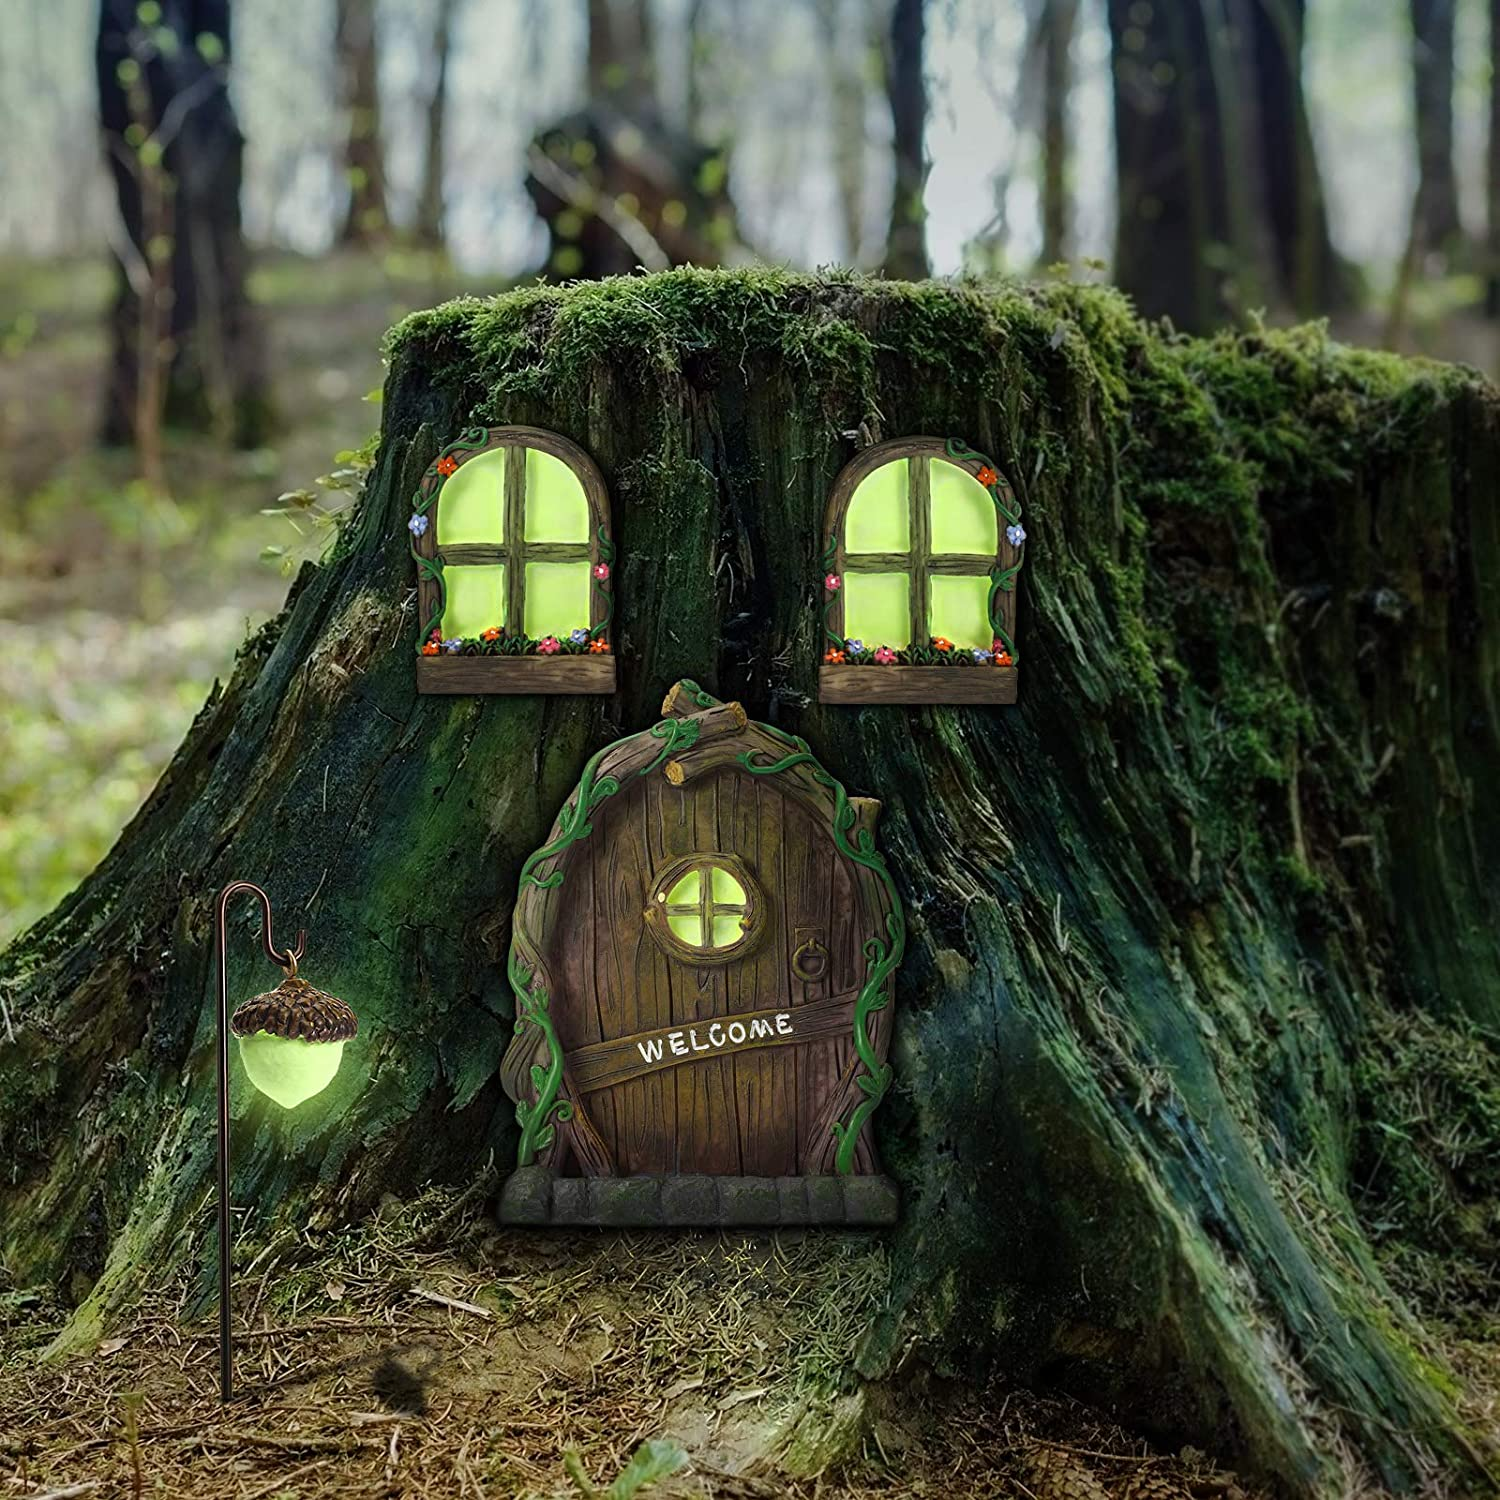 Fairy Gnome Home Window and Door with lamp for Trees Decoration for Trees, Yard Garden Sculpture Decoration